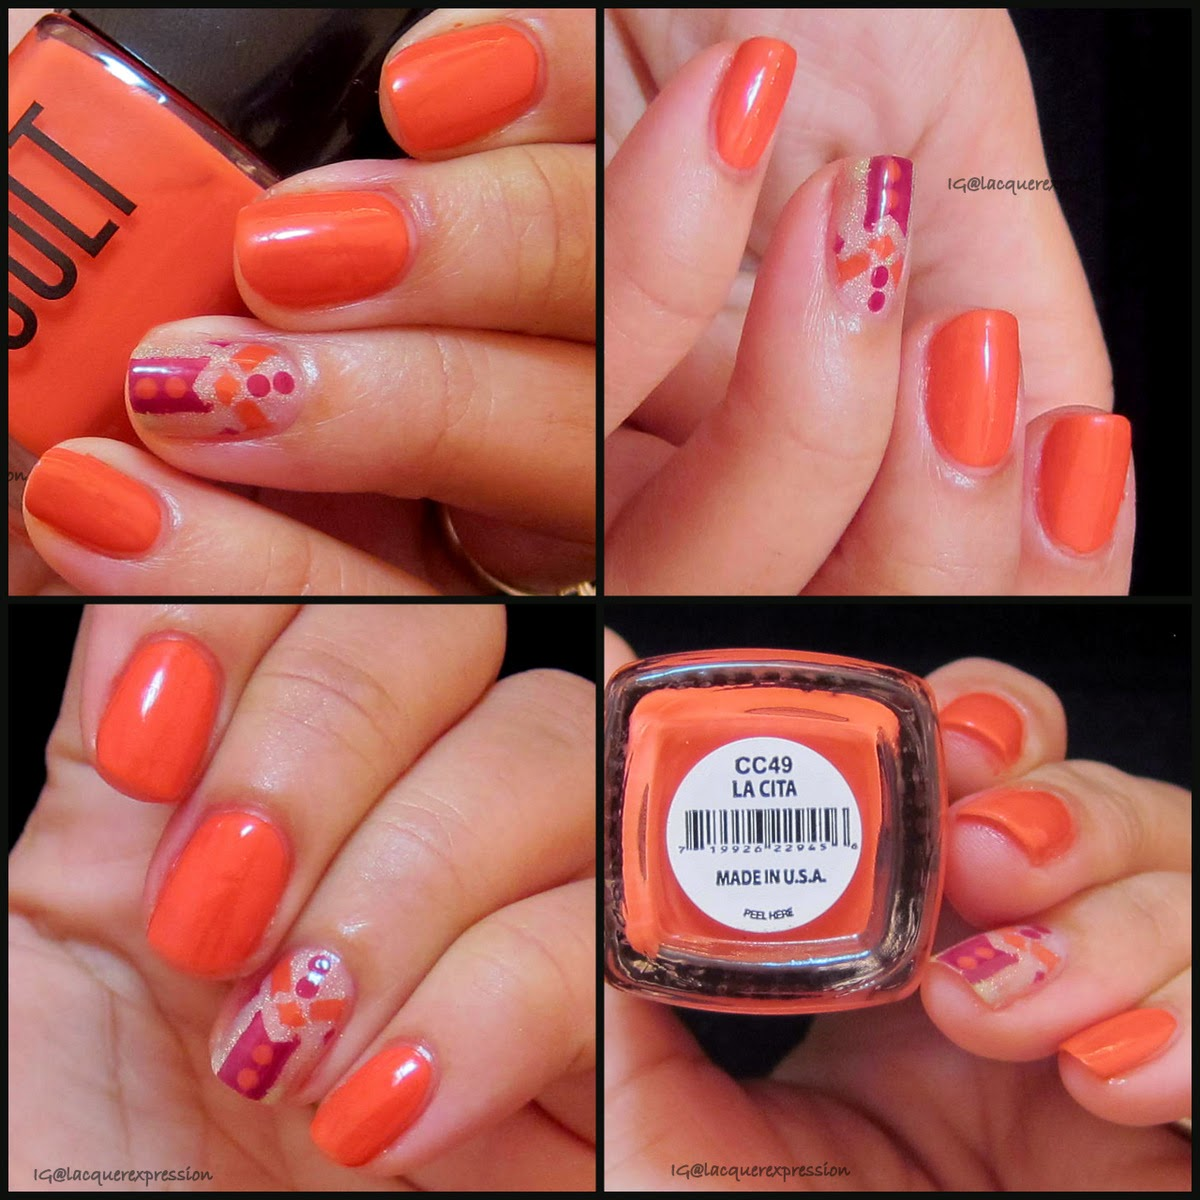 Swatch and review of cult cosmetics la cita nail polish